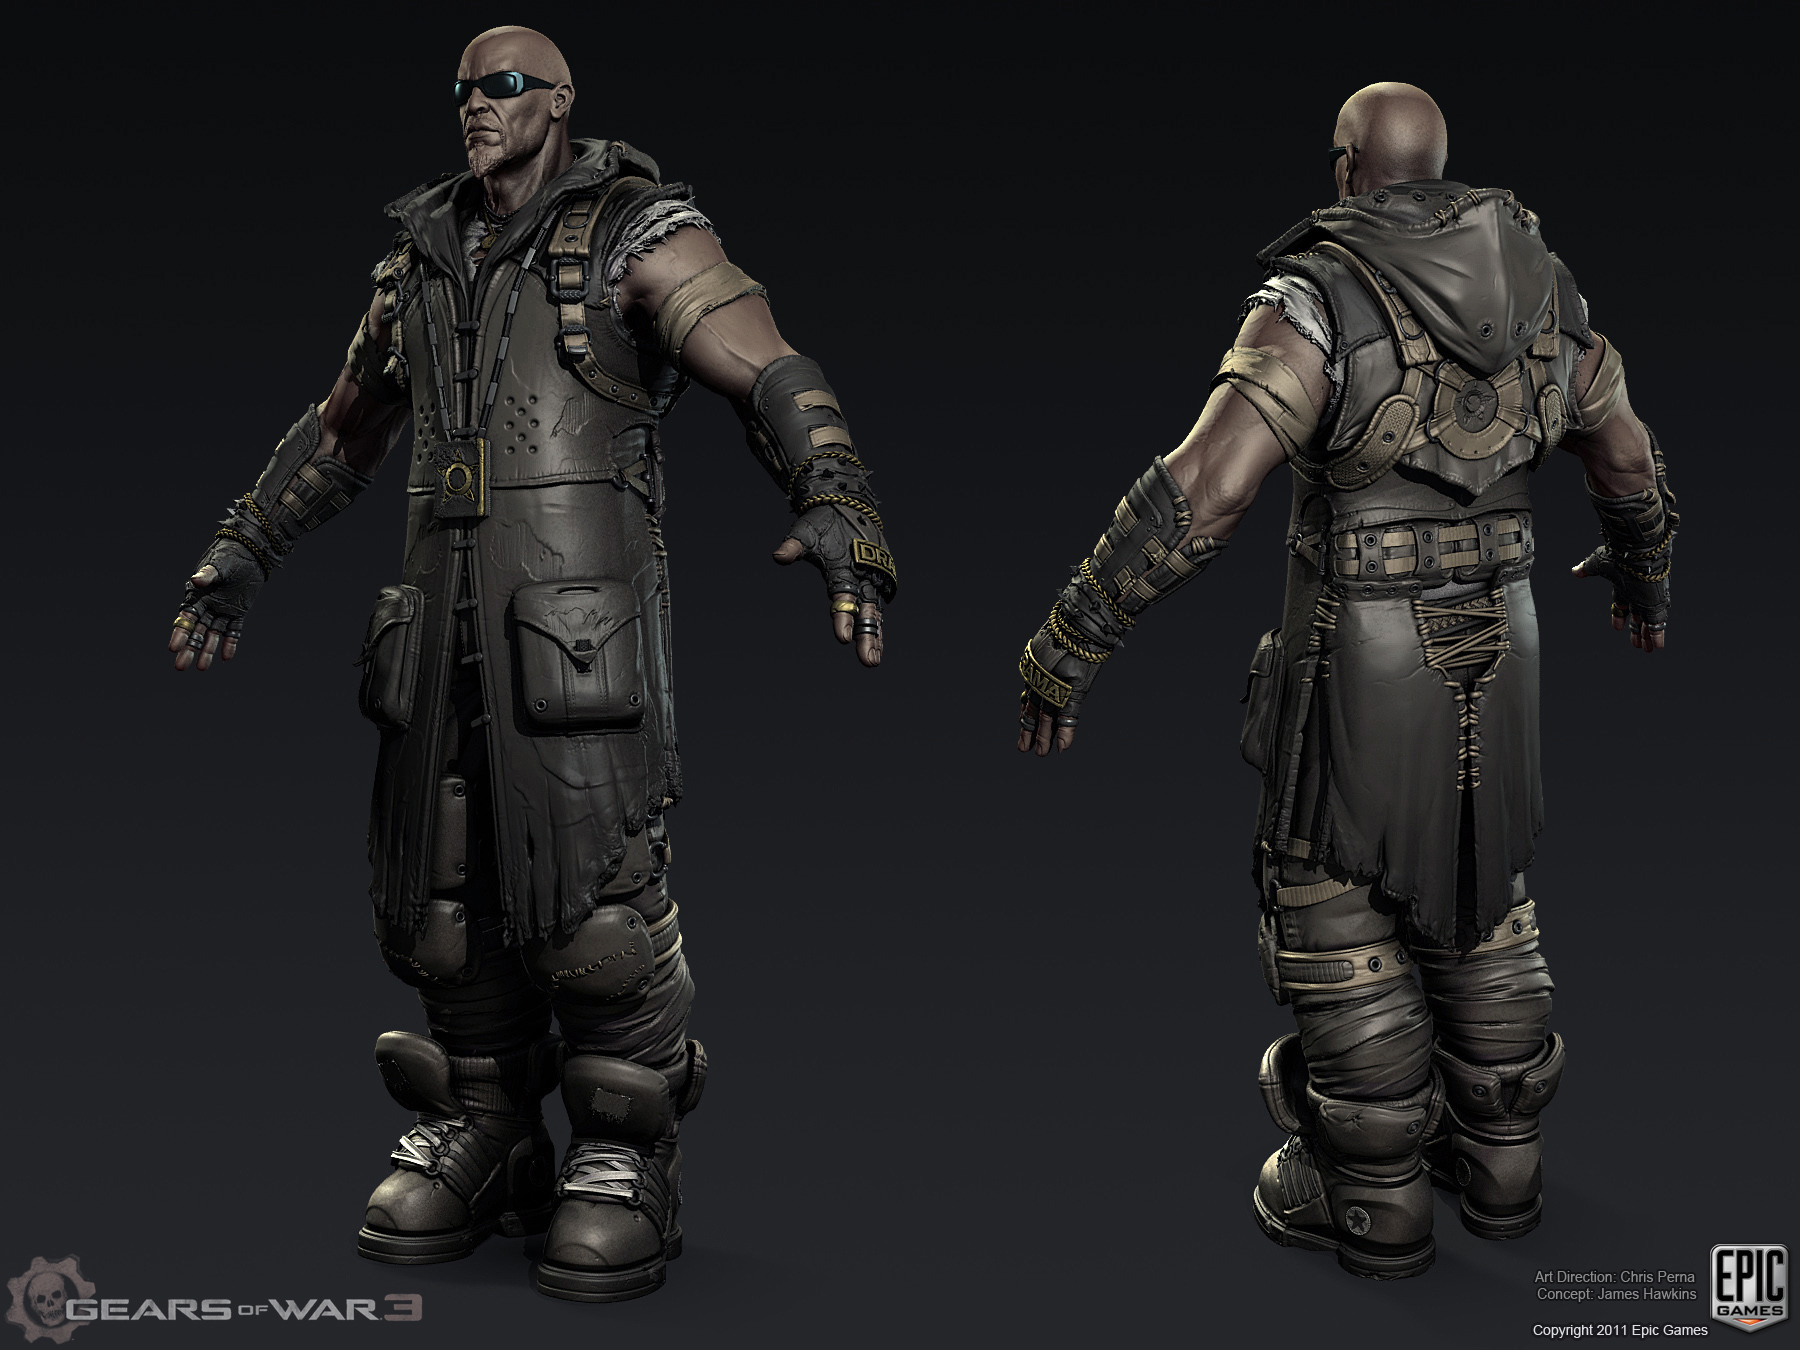 Character Design Gears Of War : Gears of war character stuffs — polycount